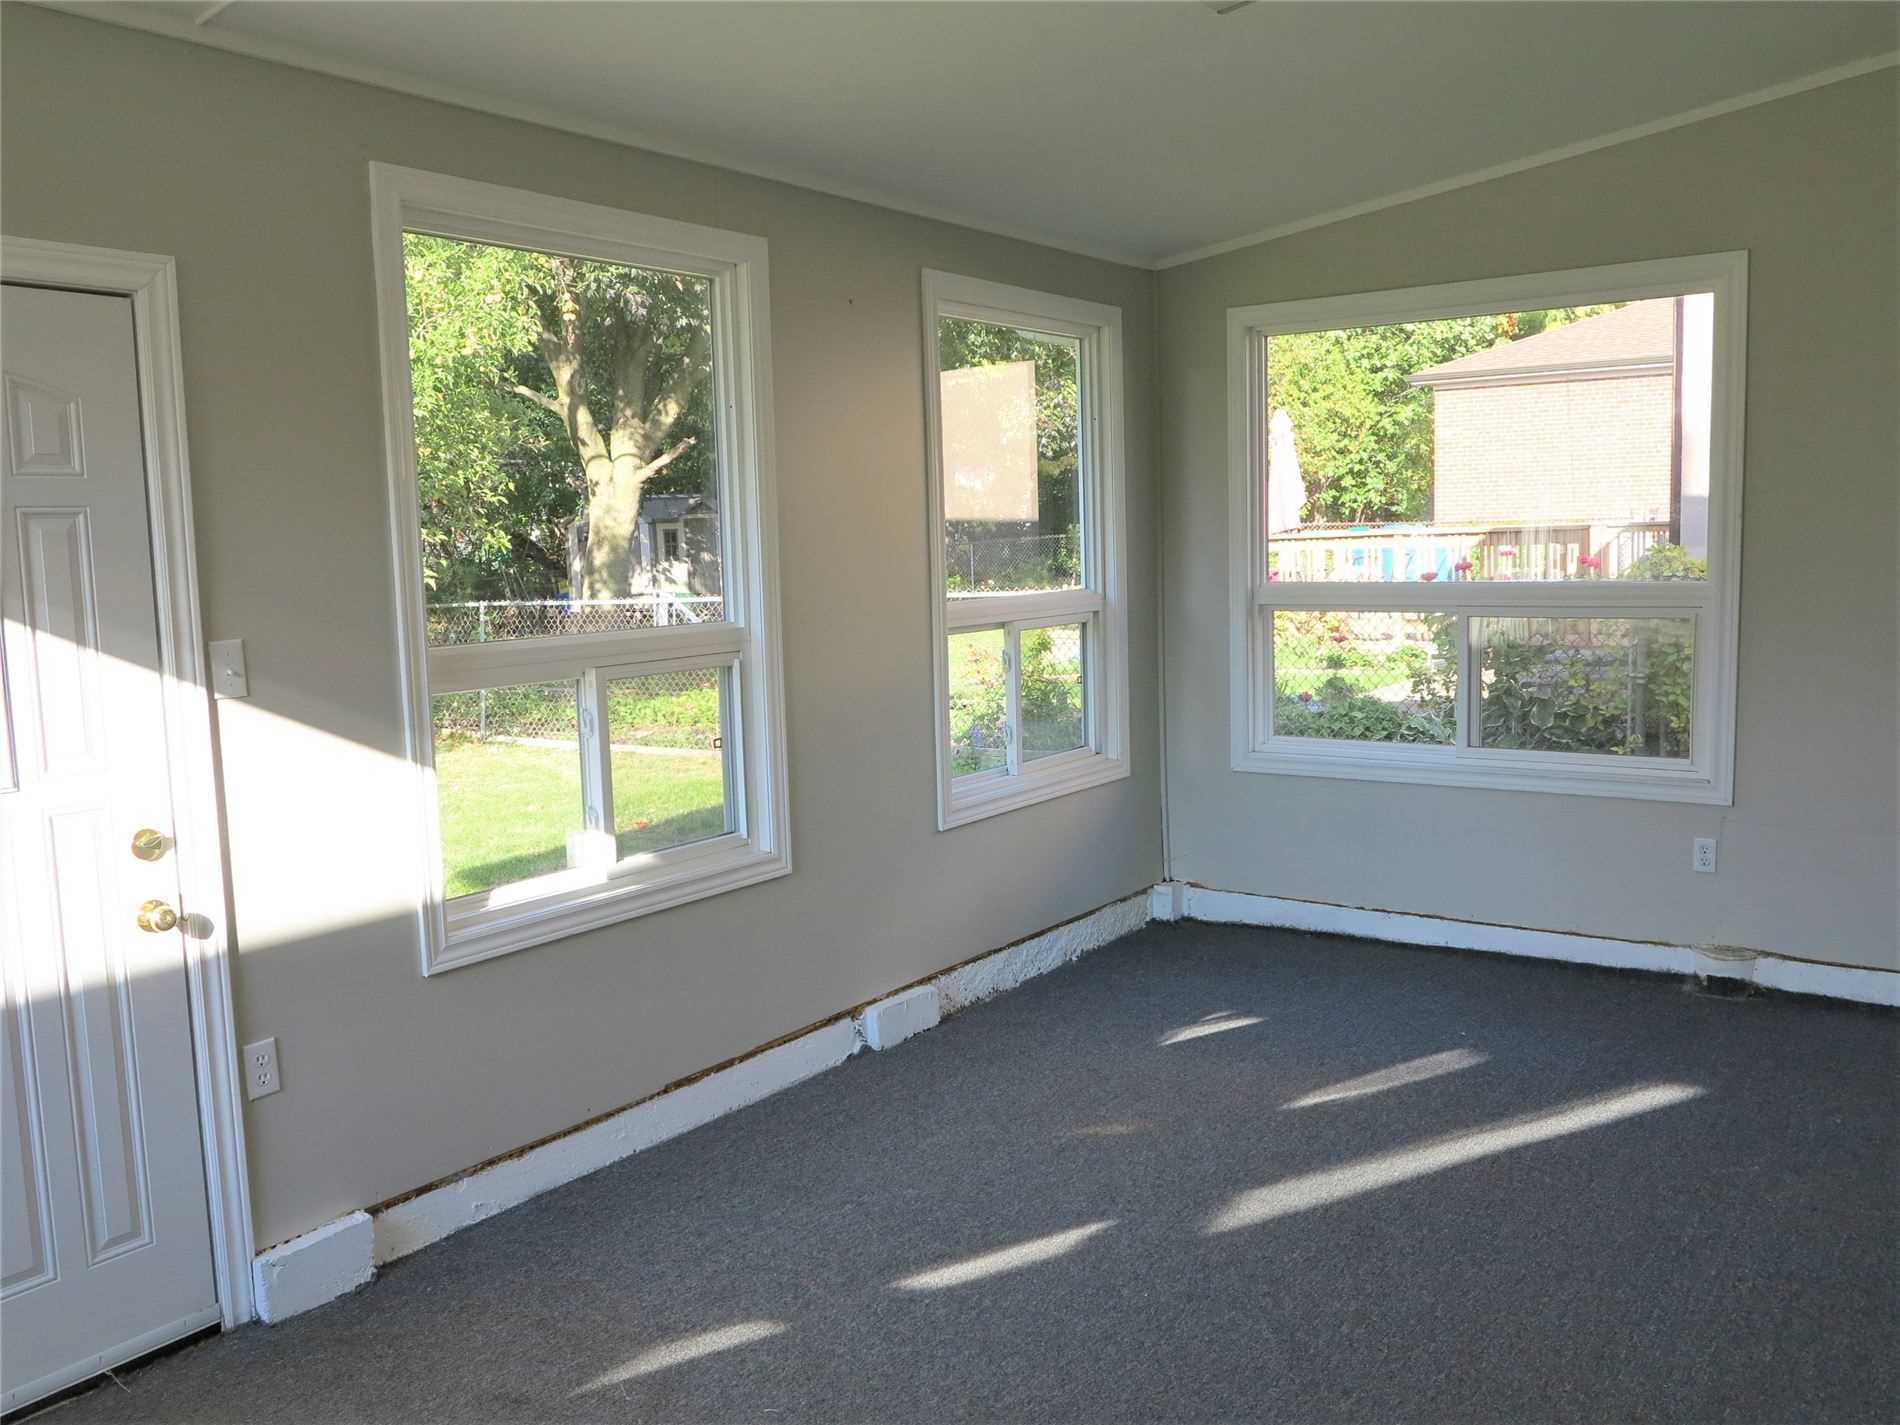 Image 26 of 30 showing inside of 3 Bedroom Detached Bungalow for Lease at 456 Drewry Ave, Toronto M2R2K7